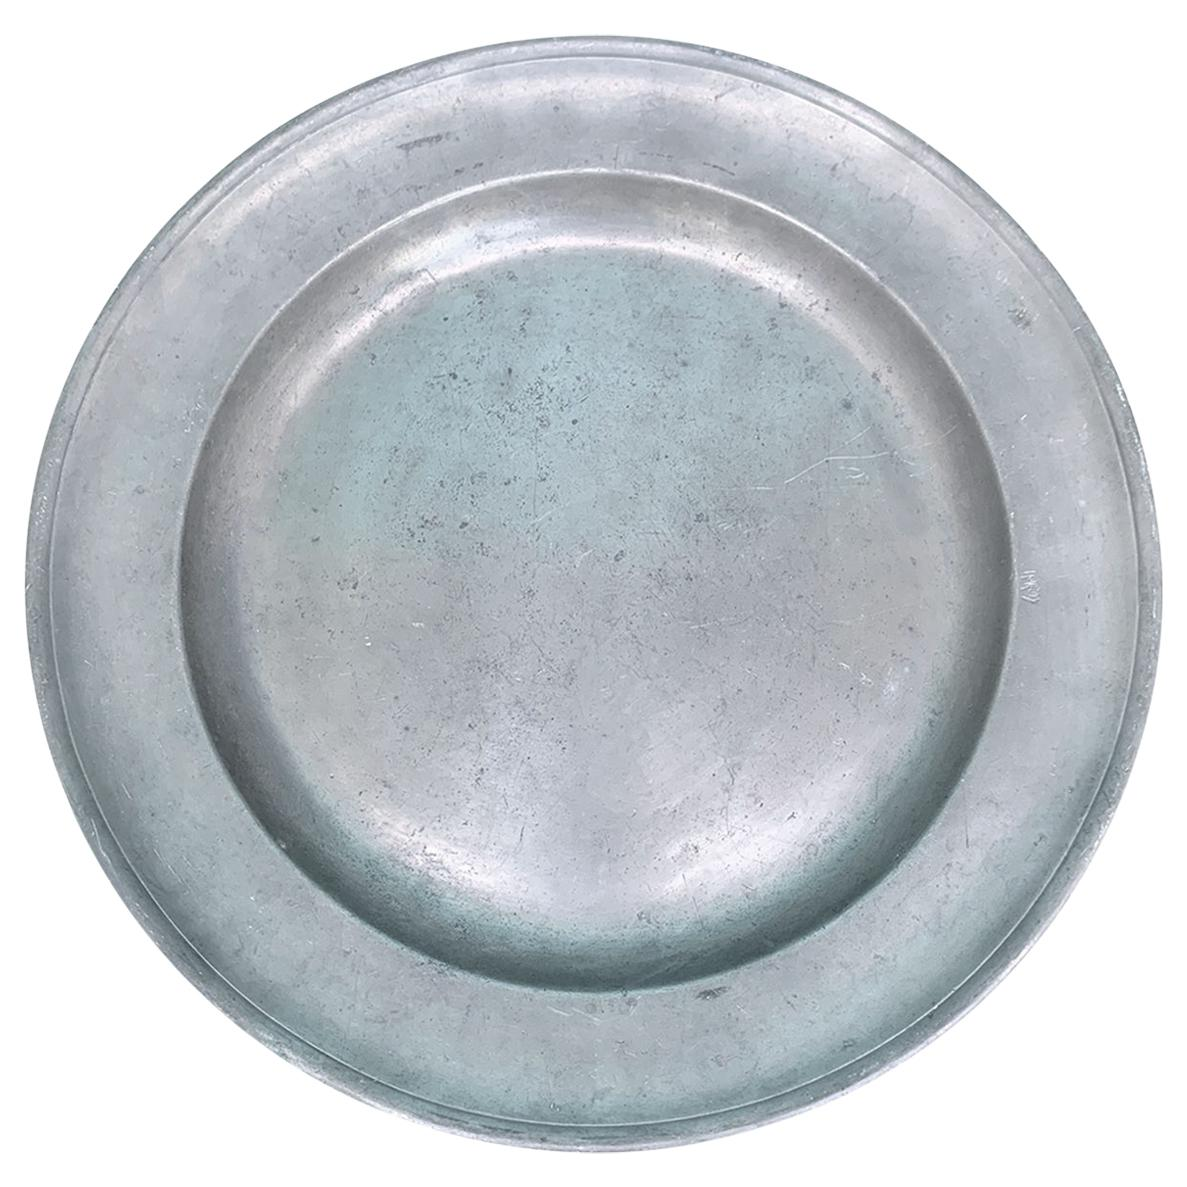 18th-19th Century Pewter Charger